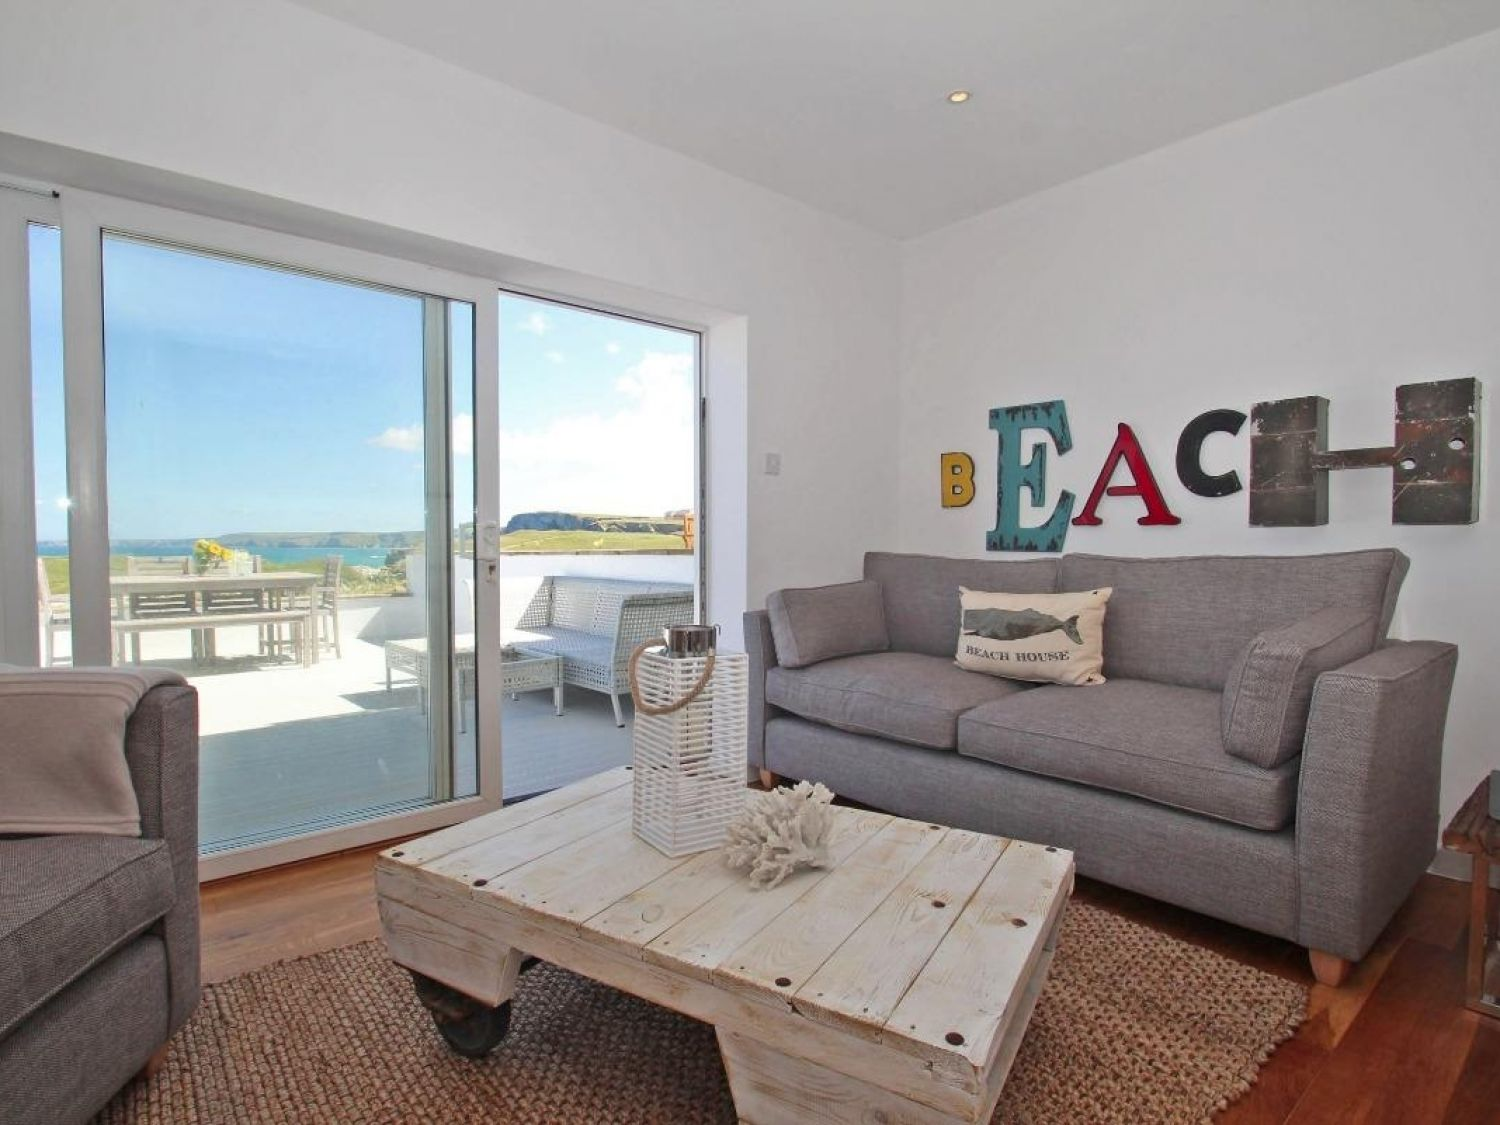 Seascape in Porth - sleeps 6 people